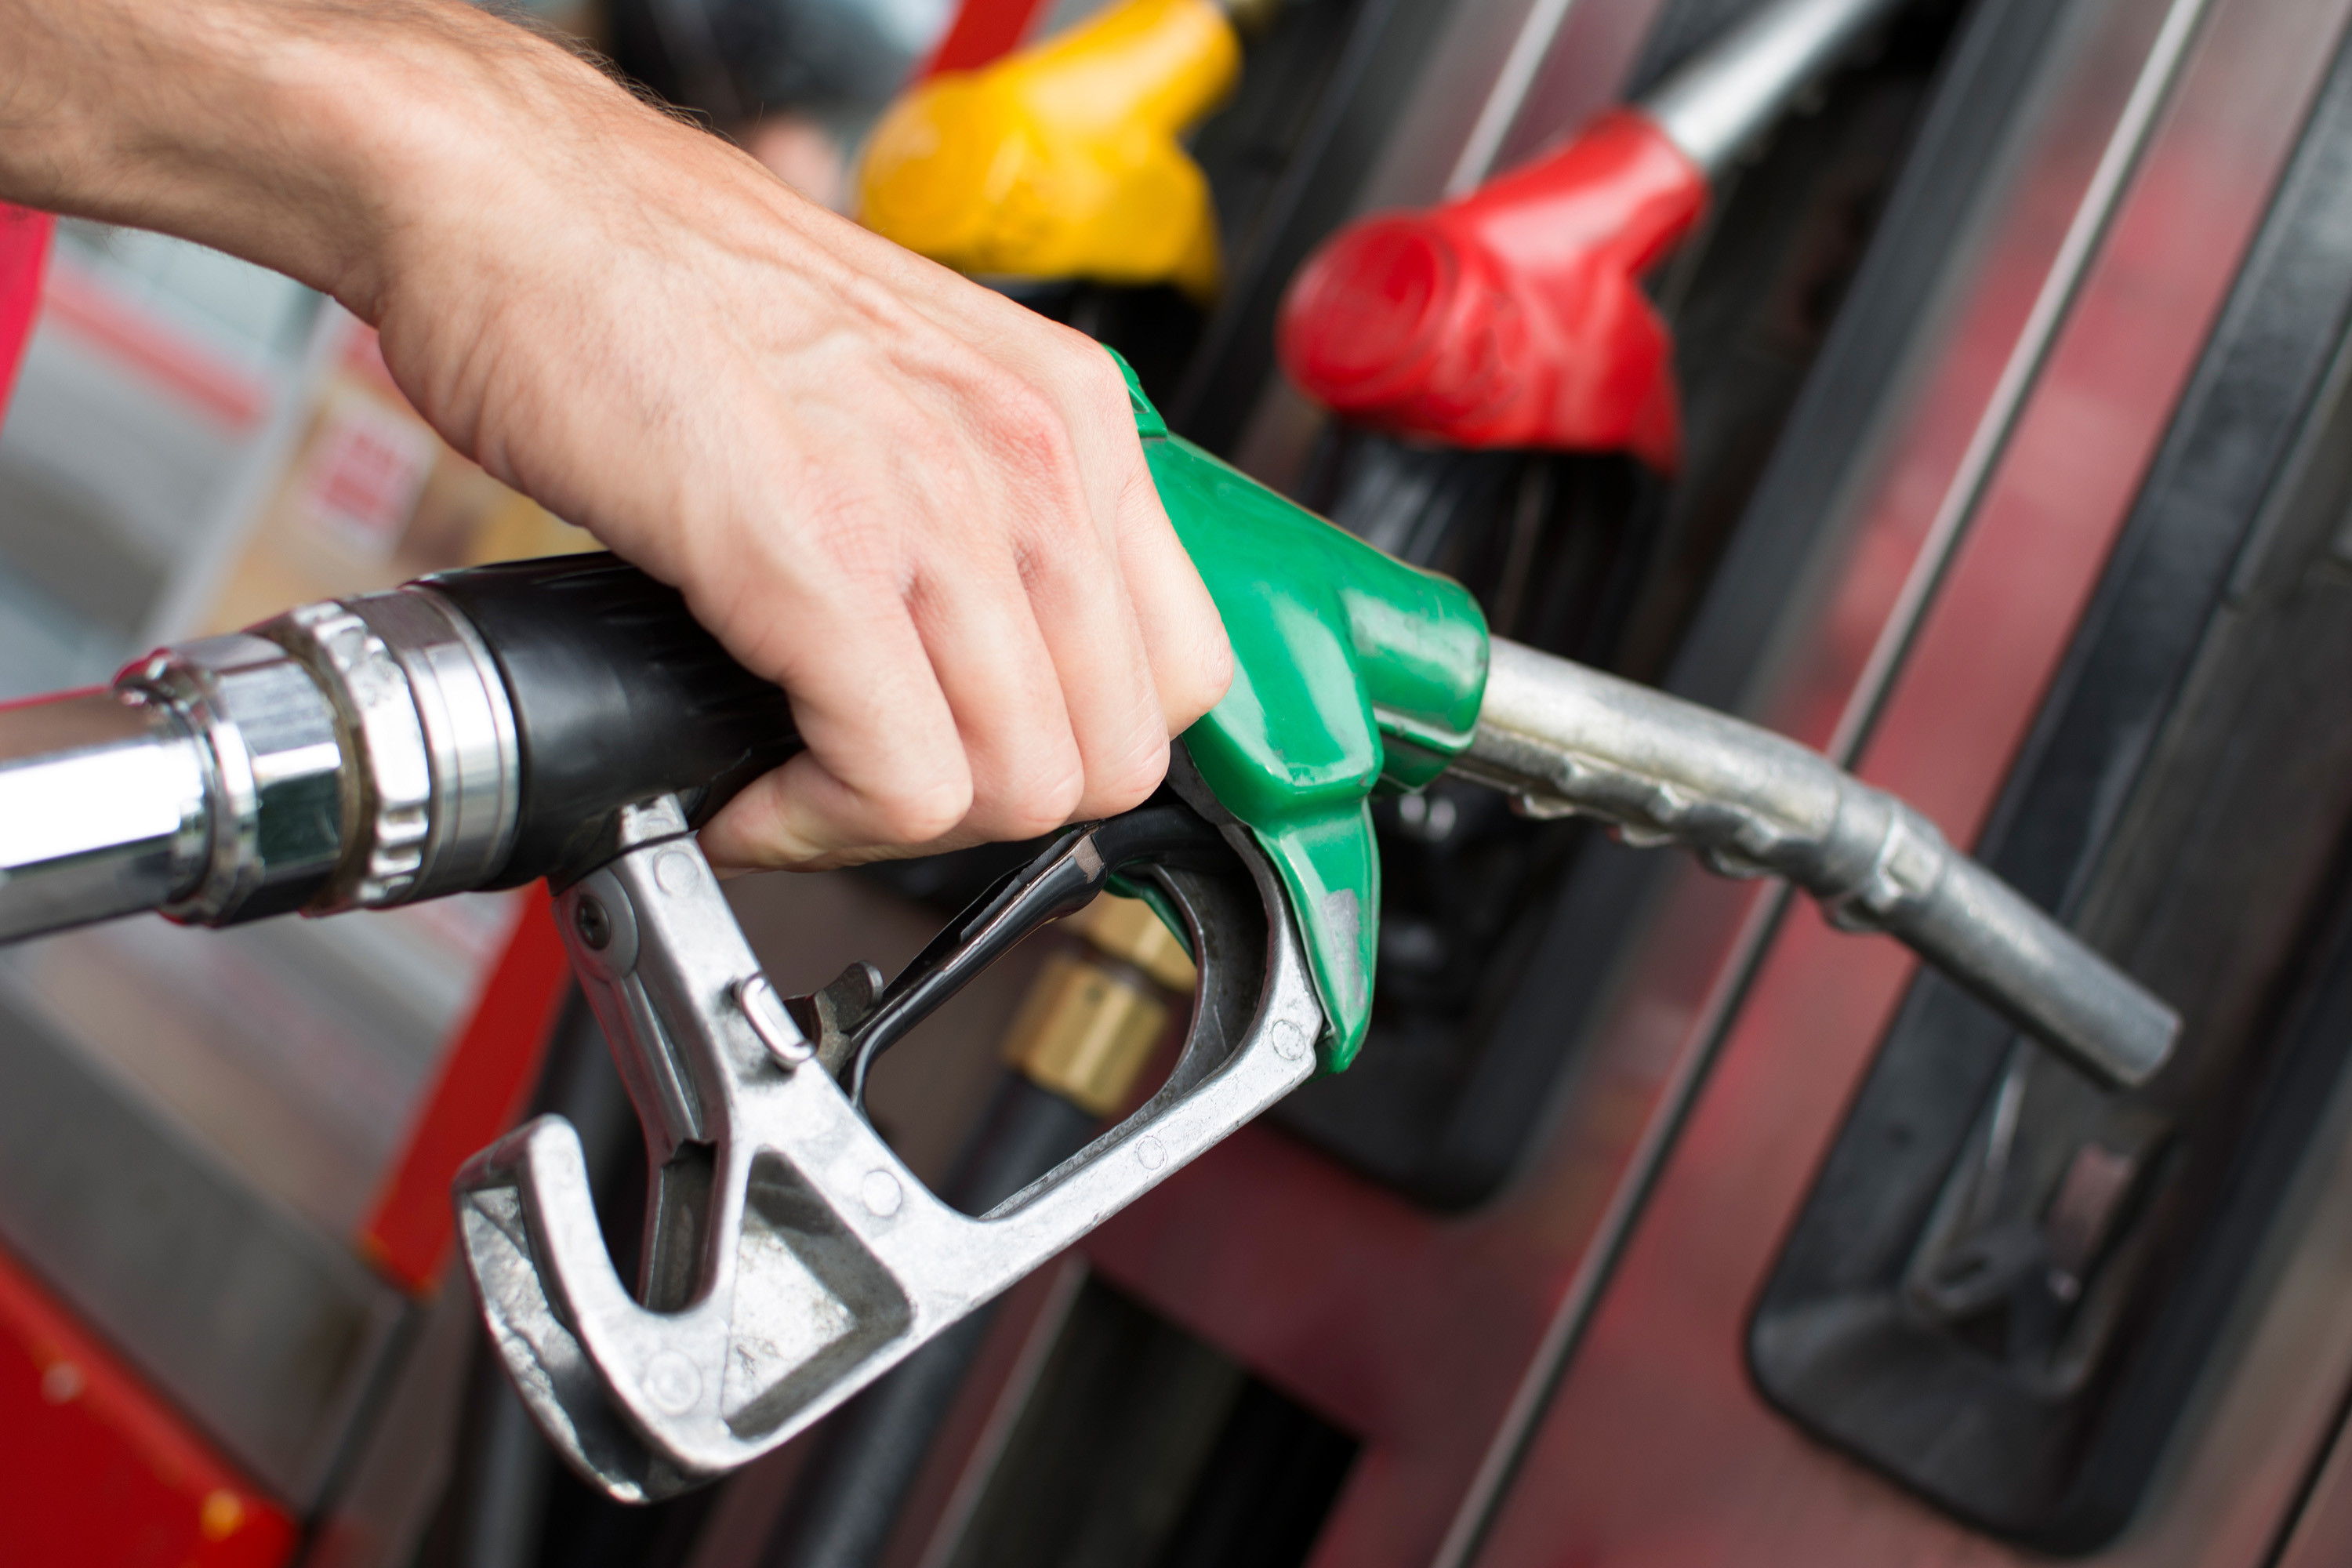 Oregon's 'radical' step: allowing motorists to pump their own gas